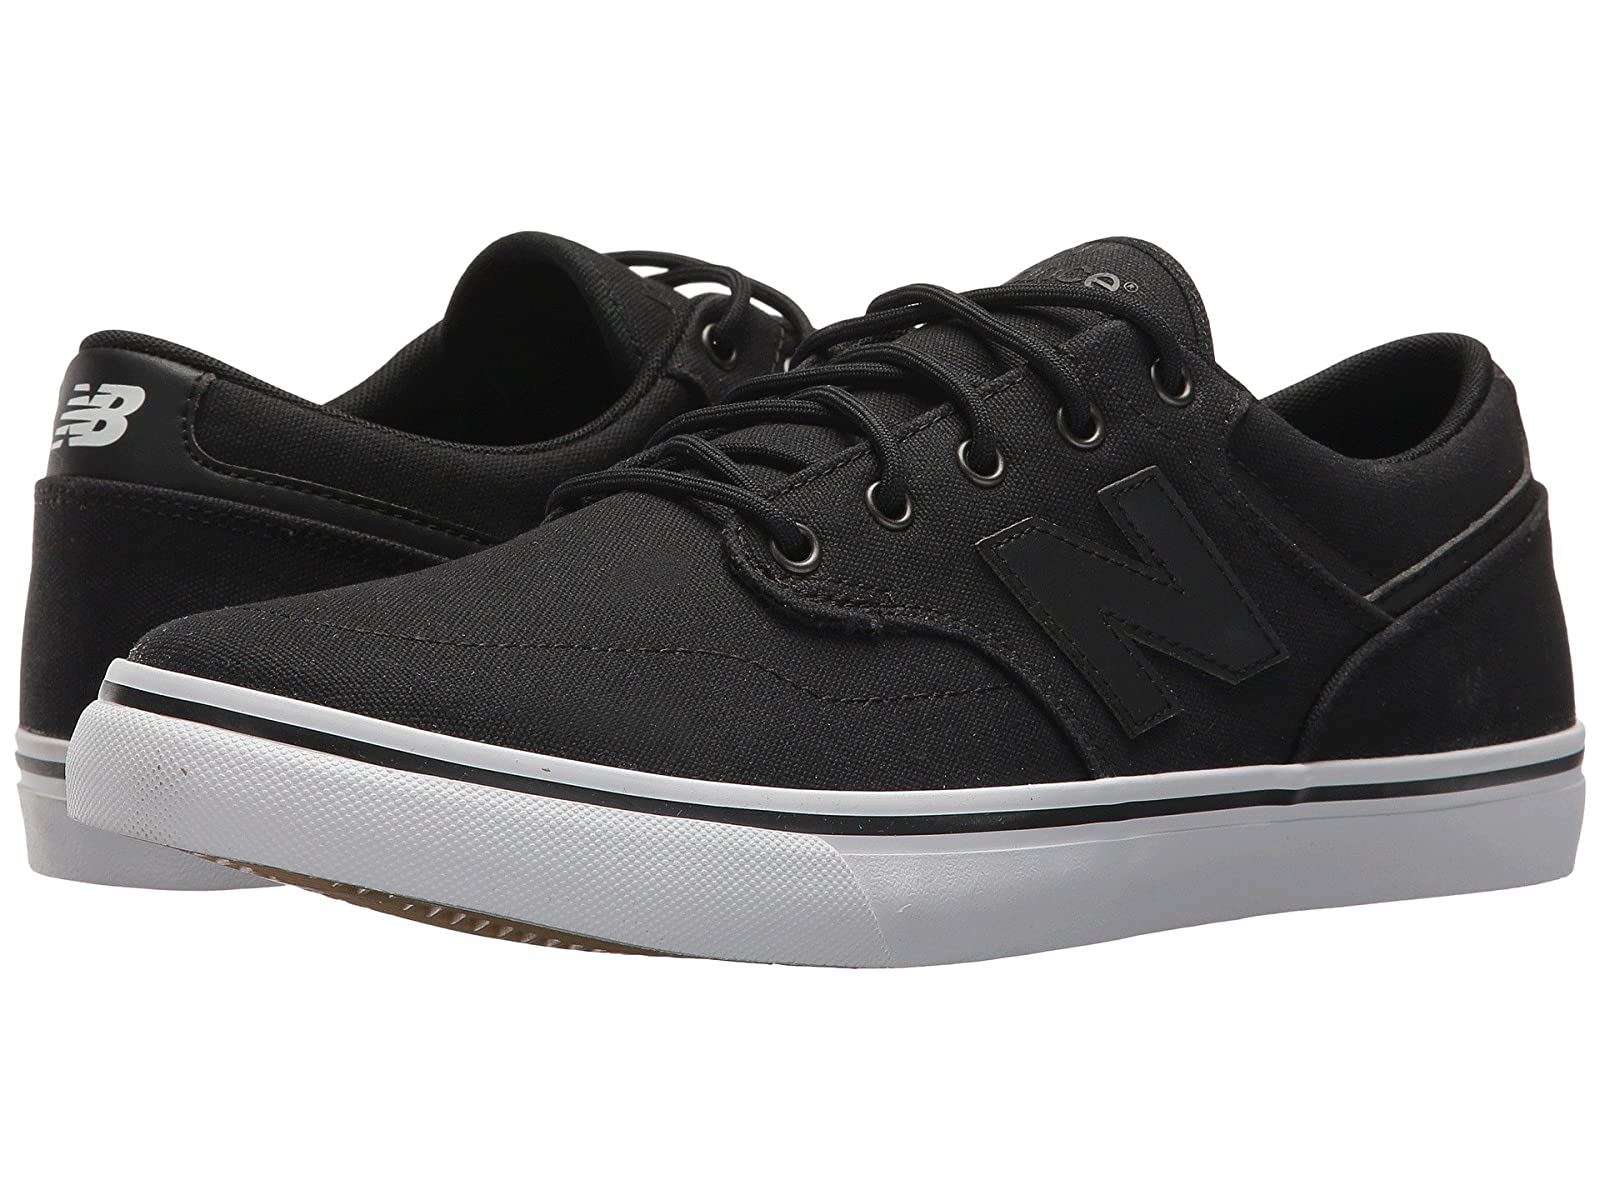 New Balance Numeric 331Atmospheric grades have affordable shoes